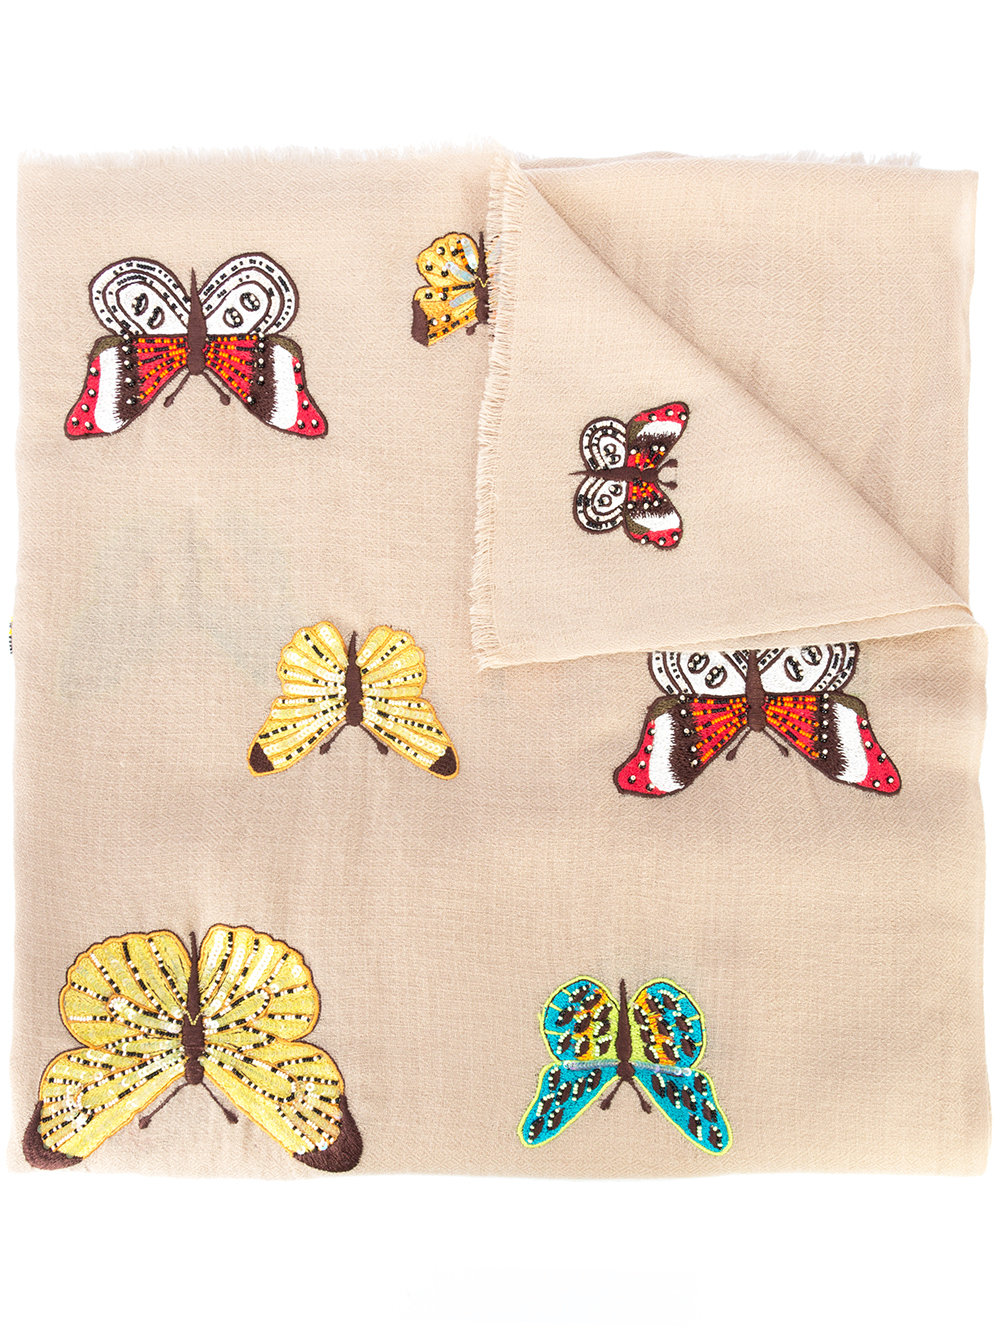 JANAVI embroidered scarf - $395